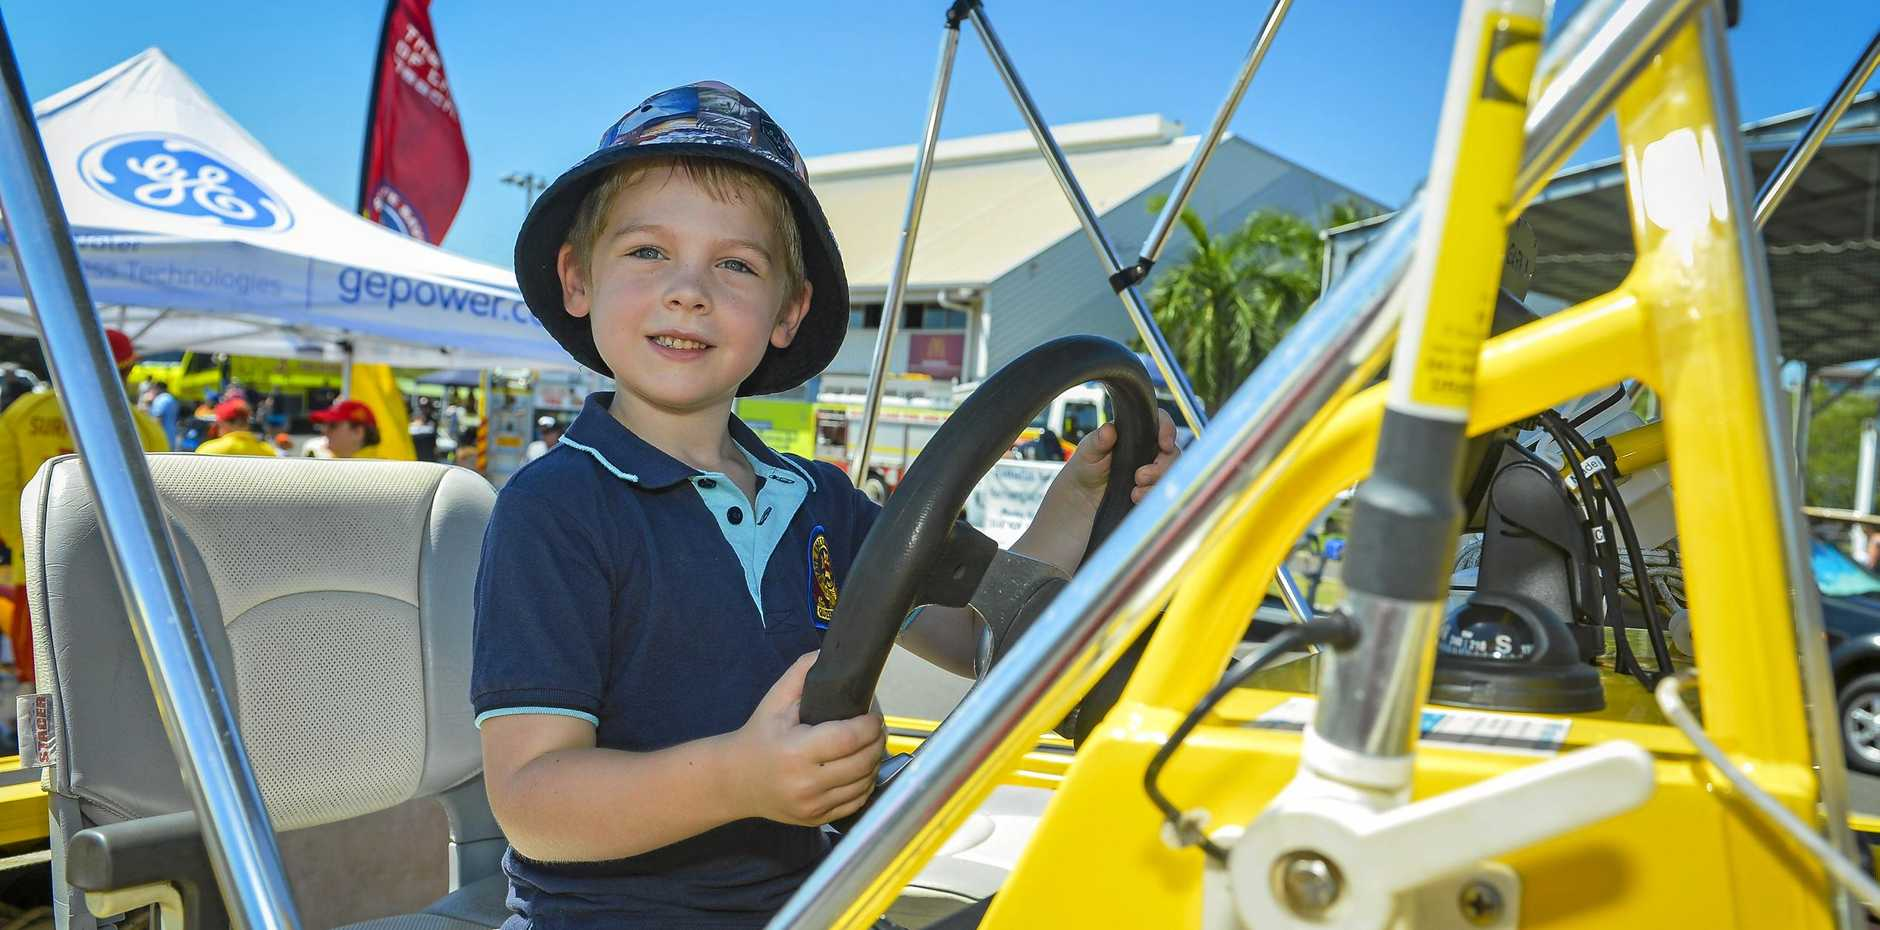 Hayden Pearce at Gladstone PCYC's Emergency Services Open Day earlier this year. Tomorrow is Rockhampton's turn.